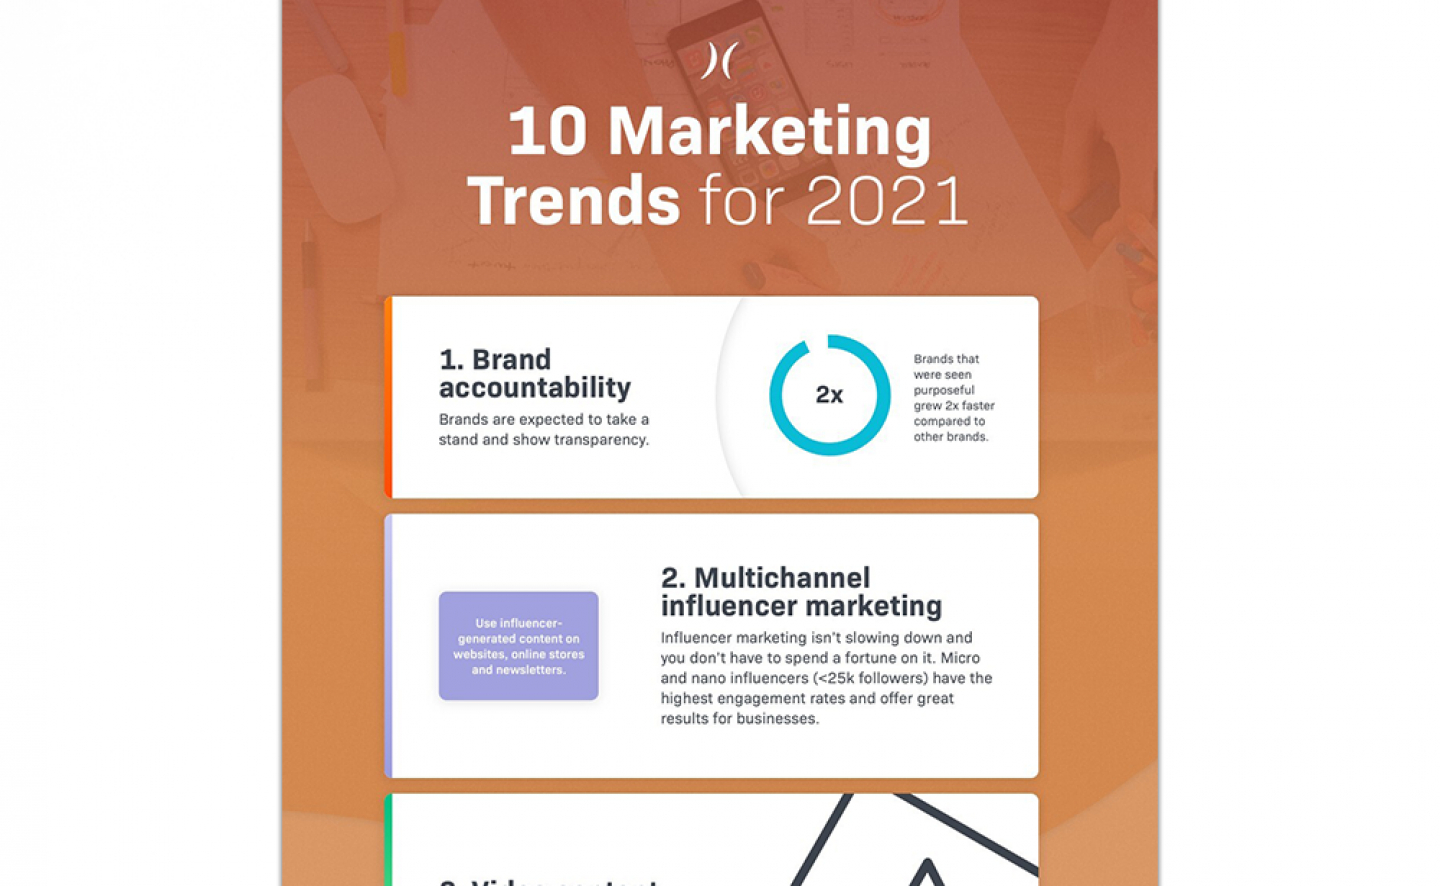 10 Marketing Trends For 2021